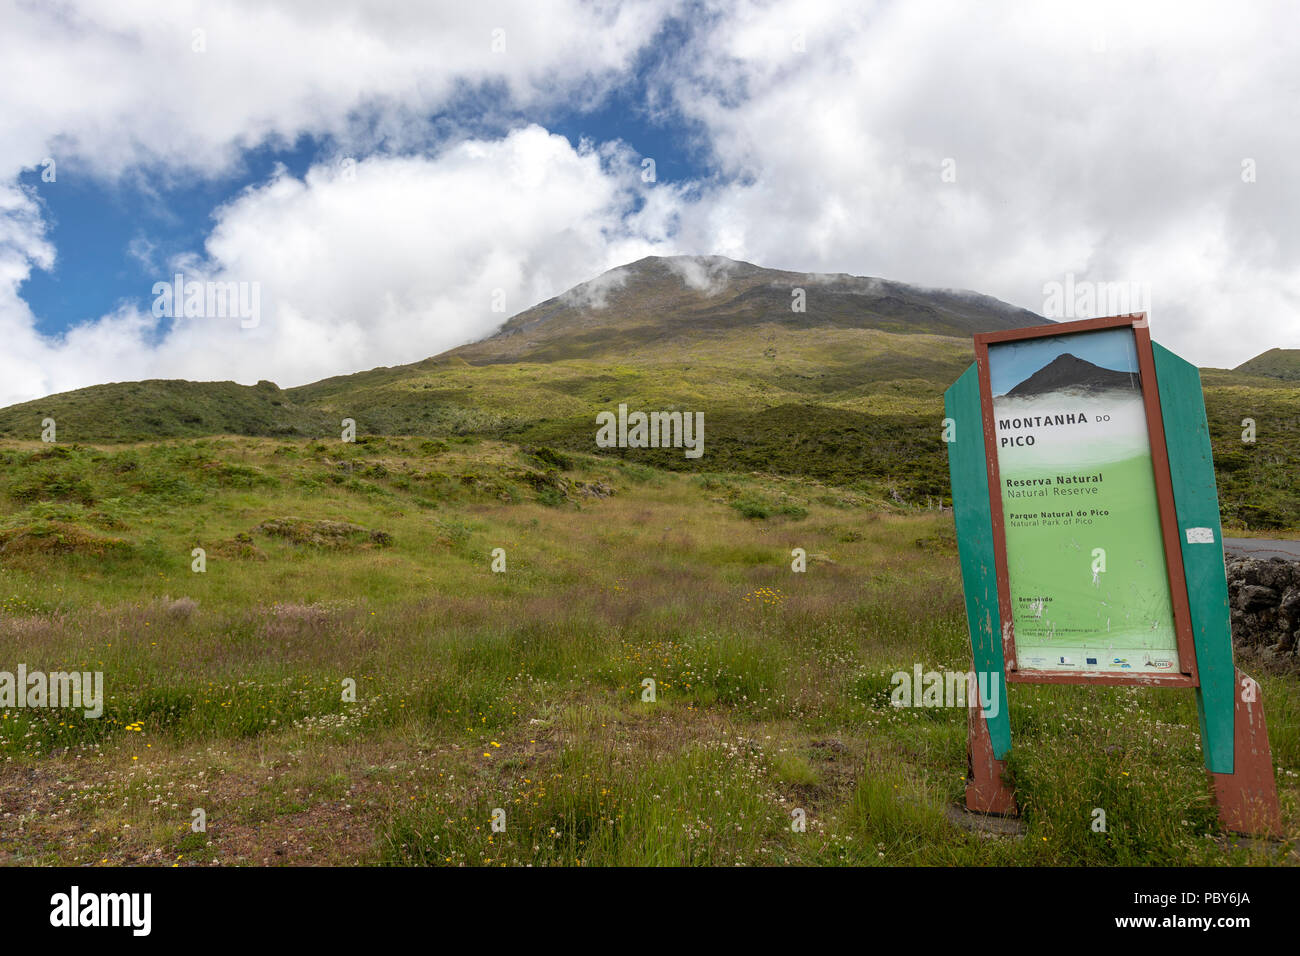 Mount Pico information placard  in Pico island, Azores, Portugal - Stock Image